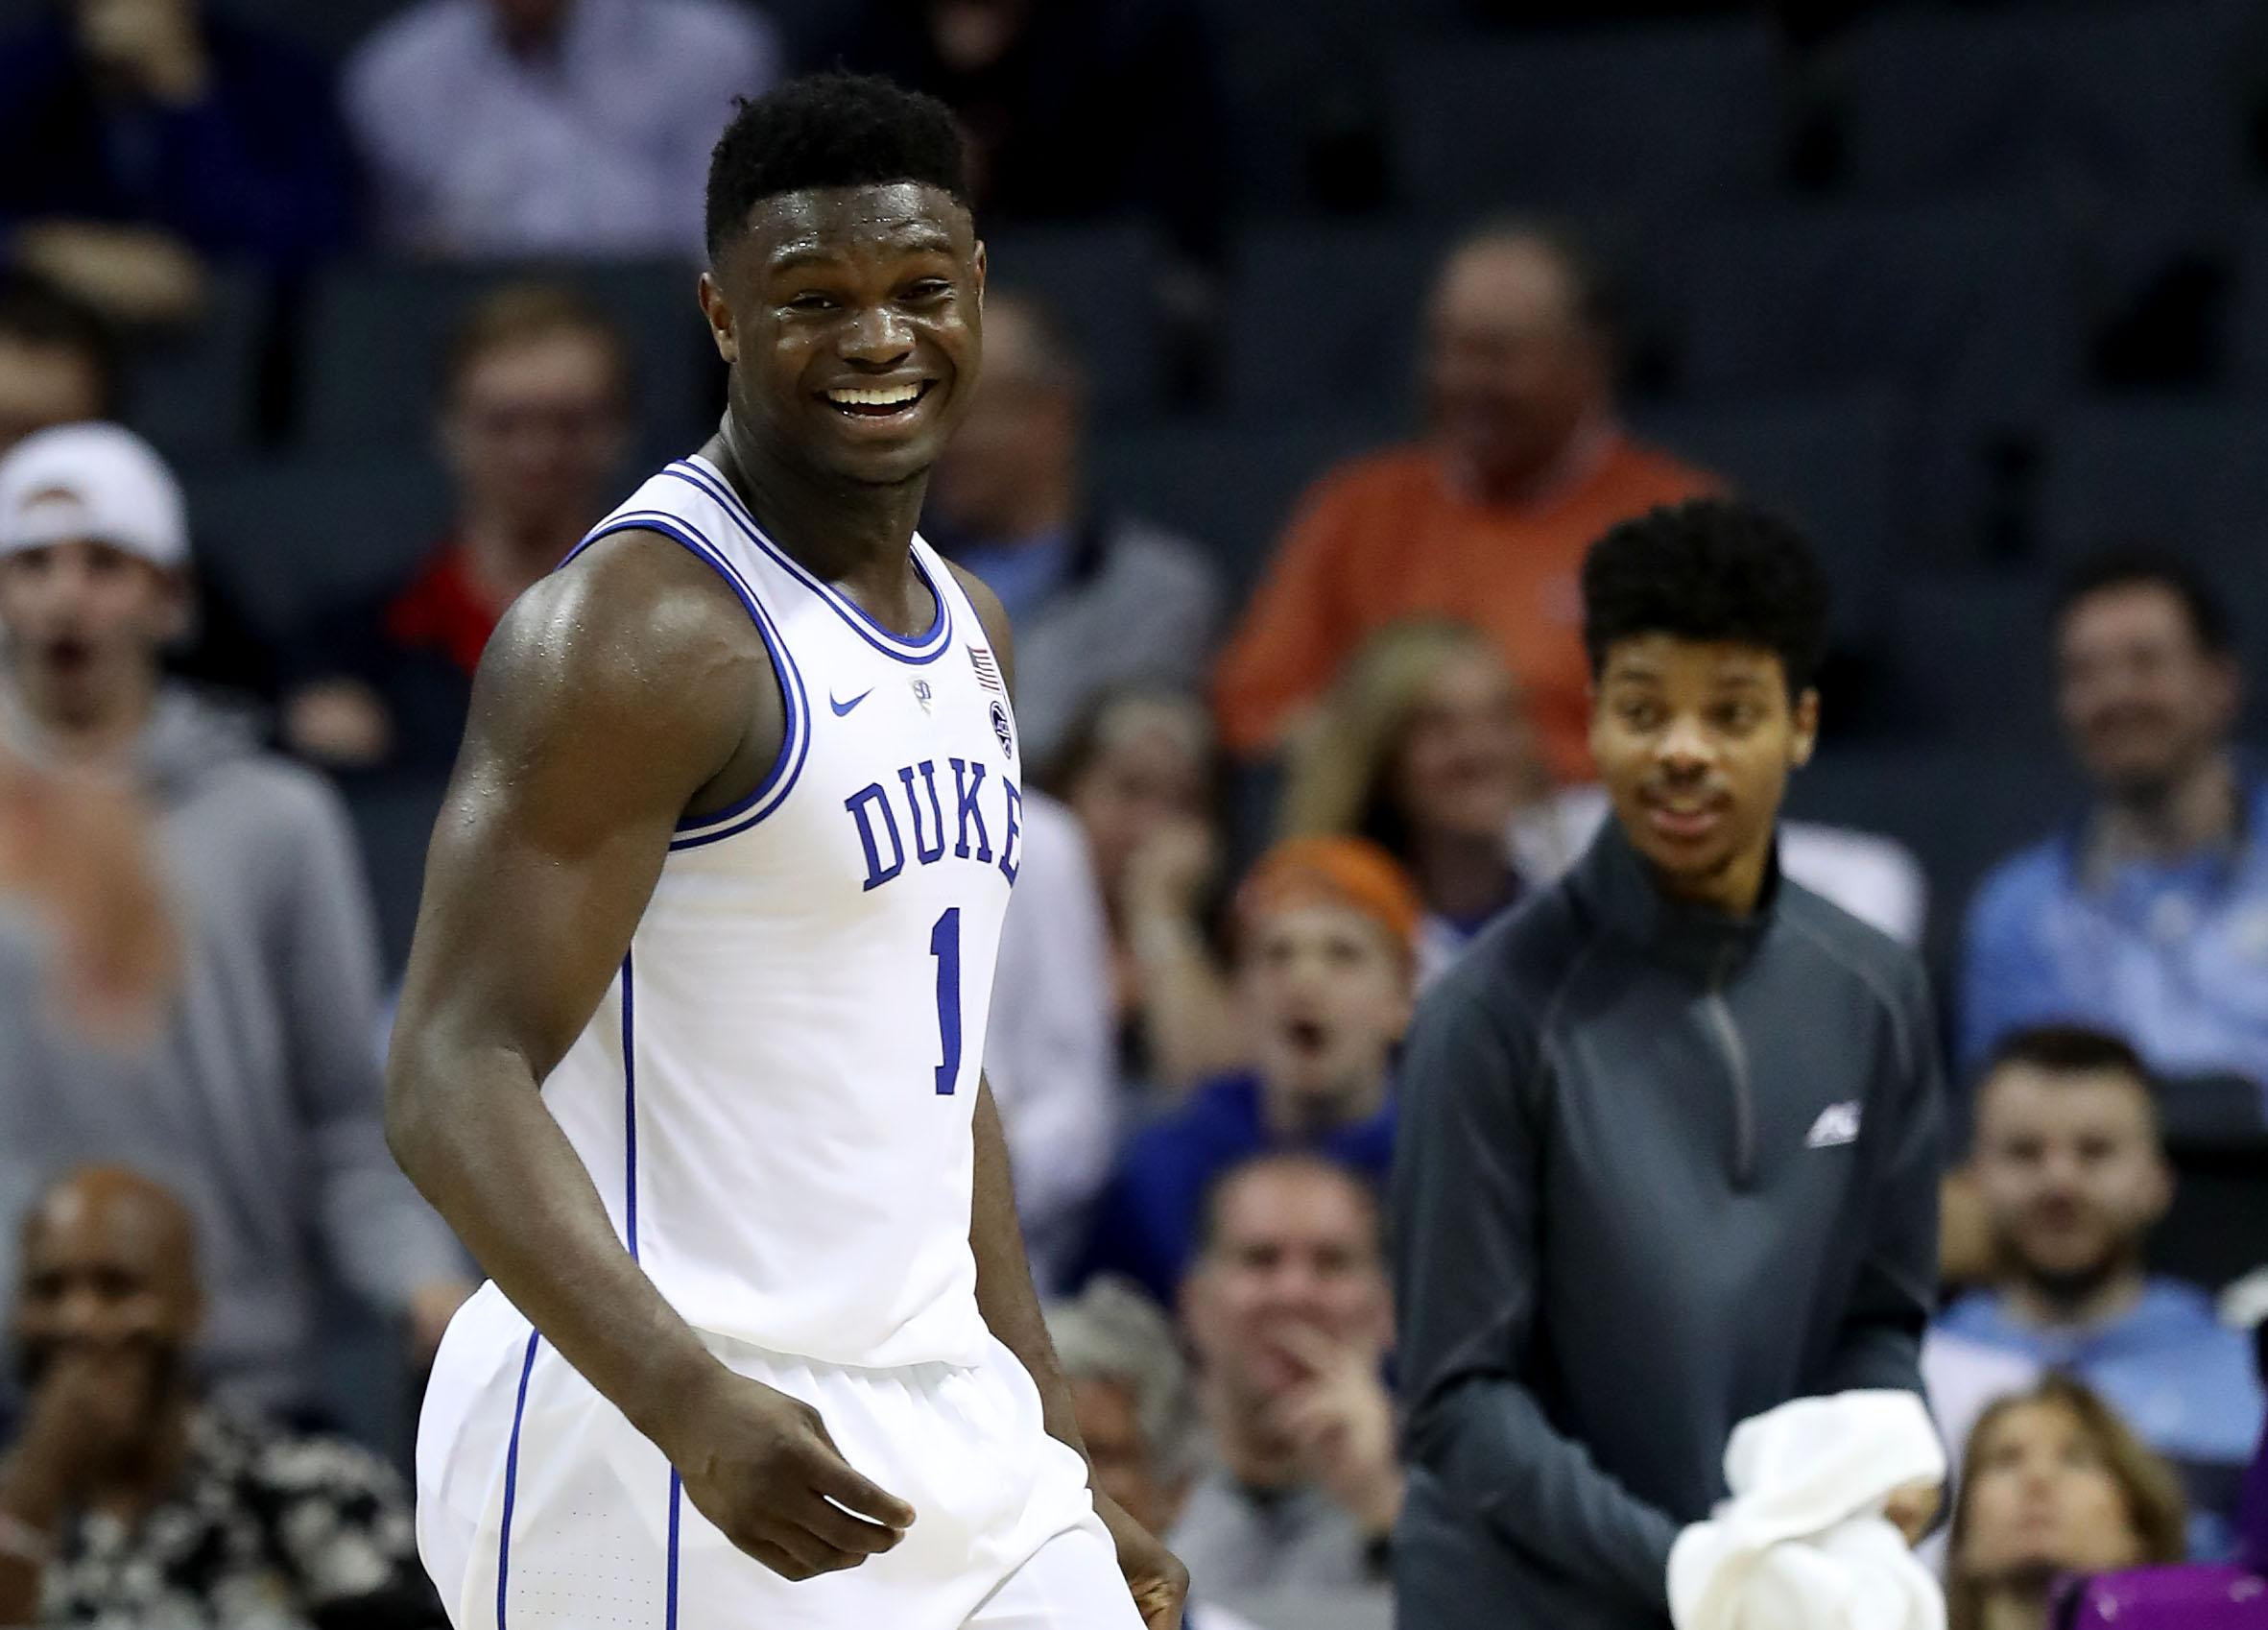 John Calipari admits he underestimated Zion Williamson